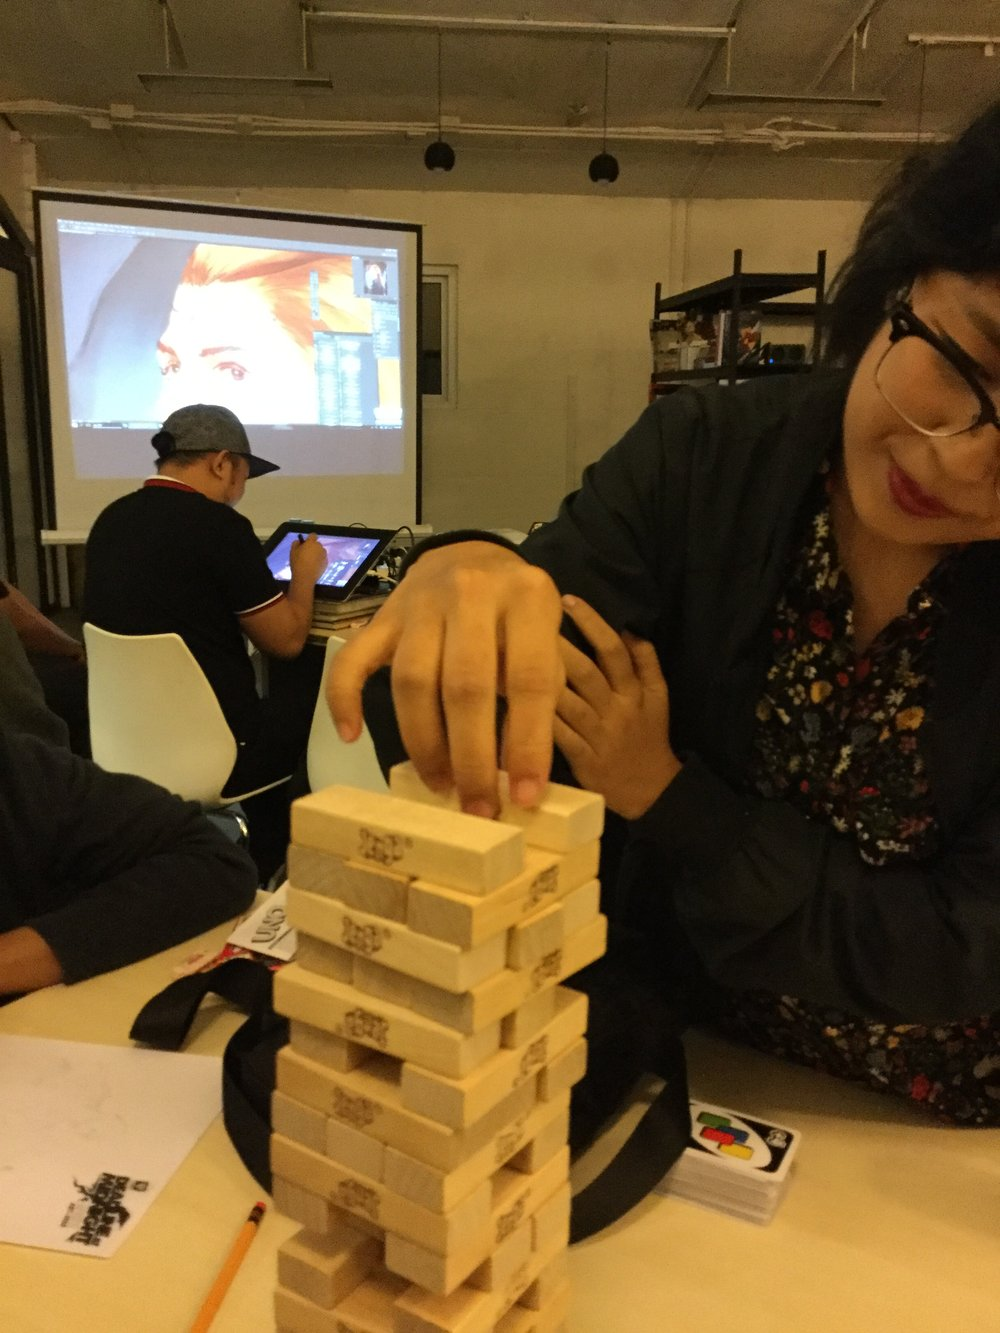 Justine Cruz gets the demo chair as a game of jenga plays on behind him.